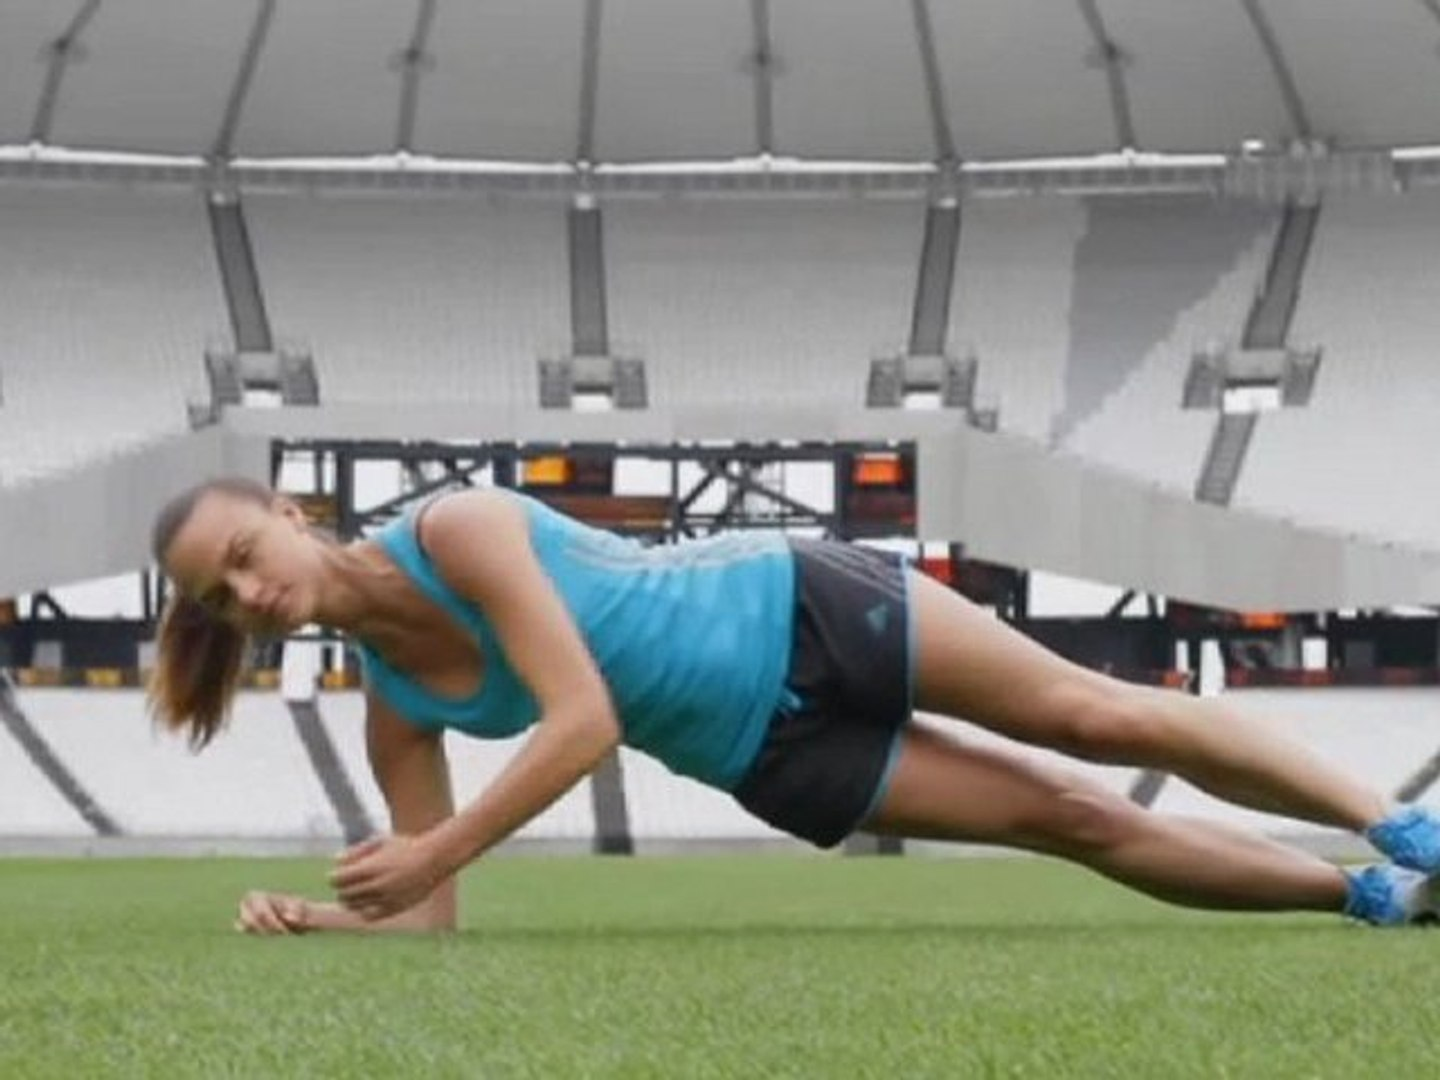 Grazia's Medal Winning Workout: PLANKS